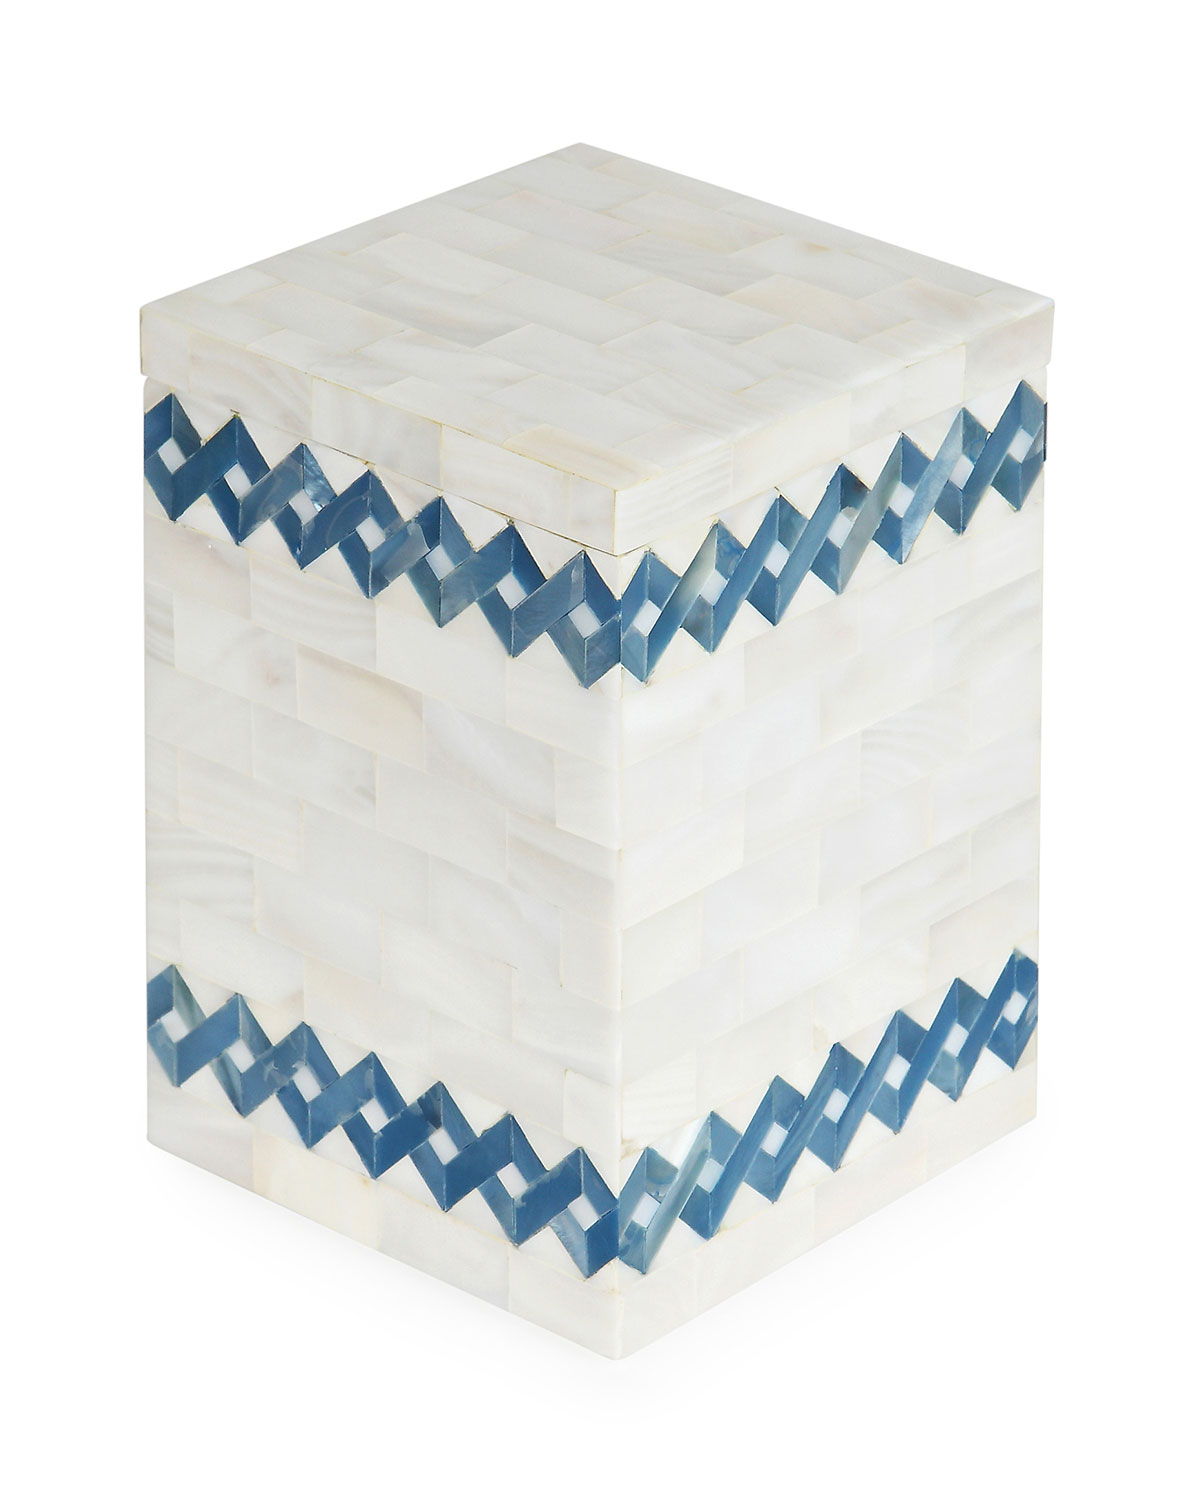 SV Casa Blue Weave Lidded Box